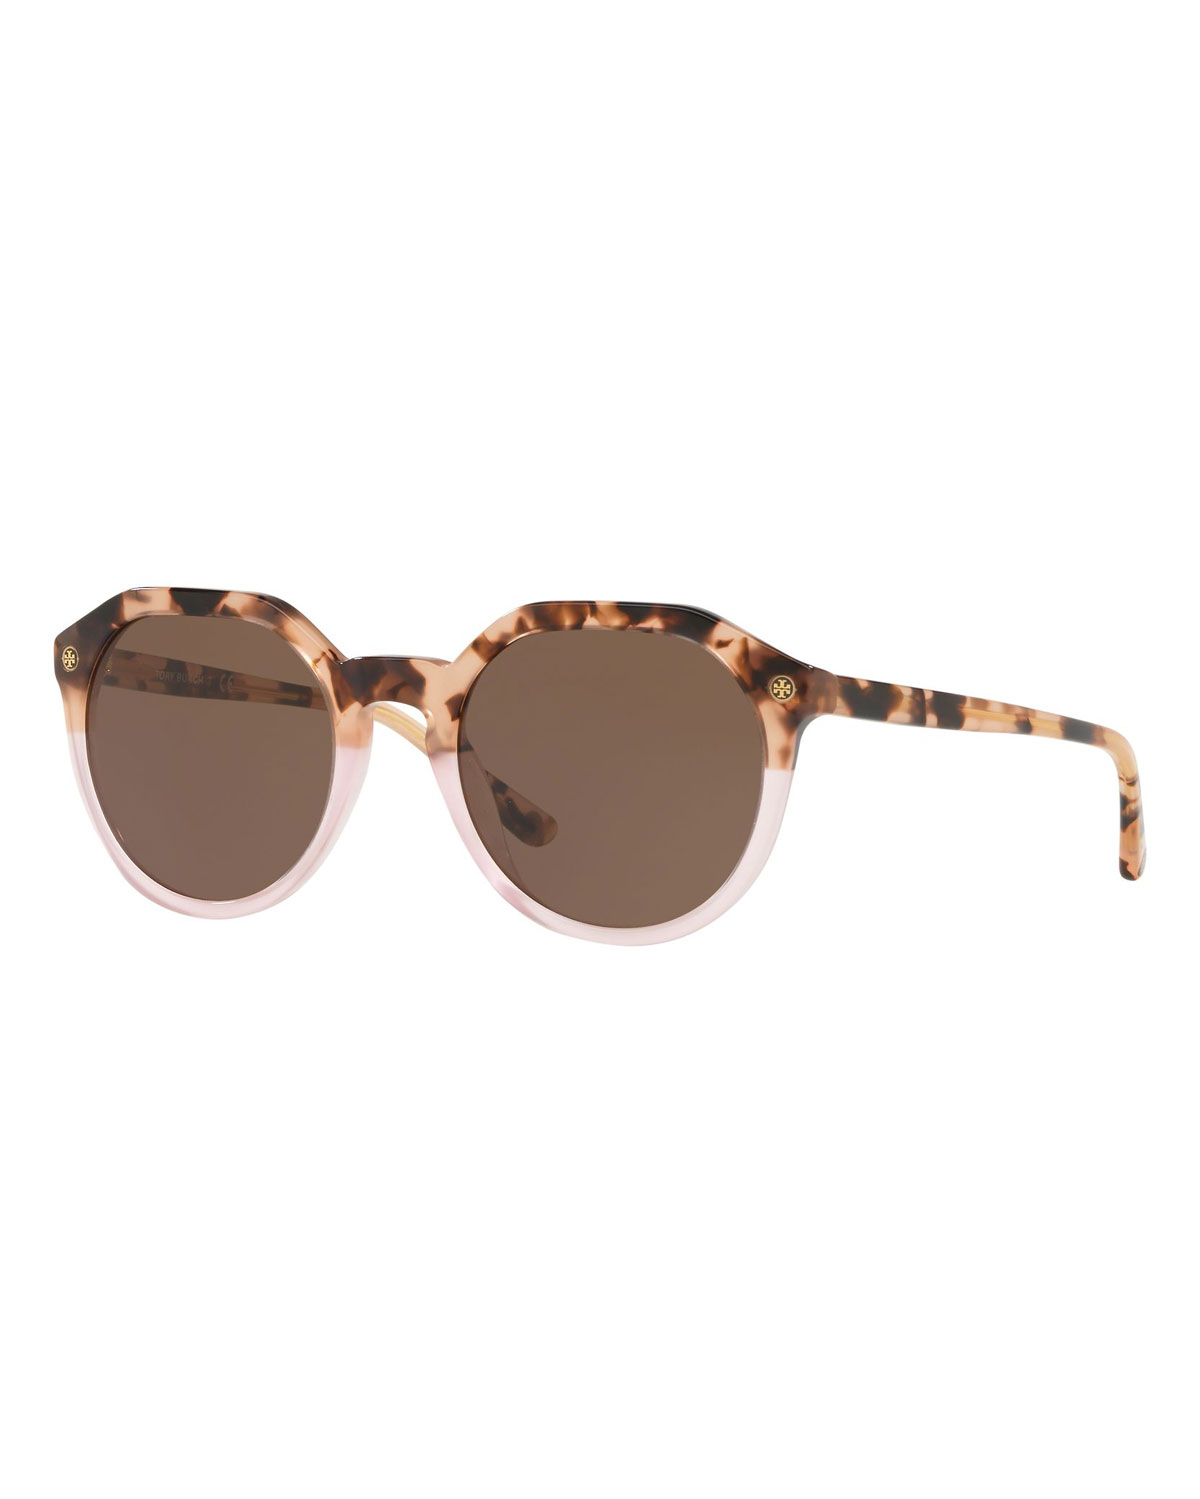 Buy Burch tory launches eyewear pictures trends